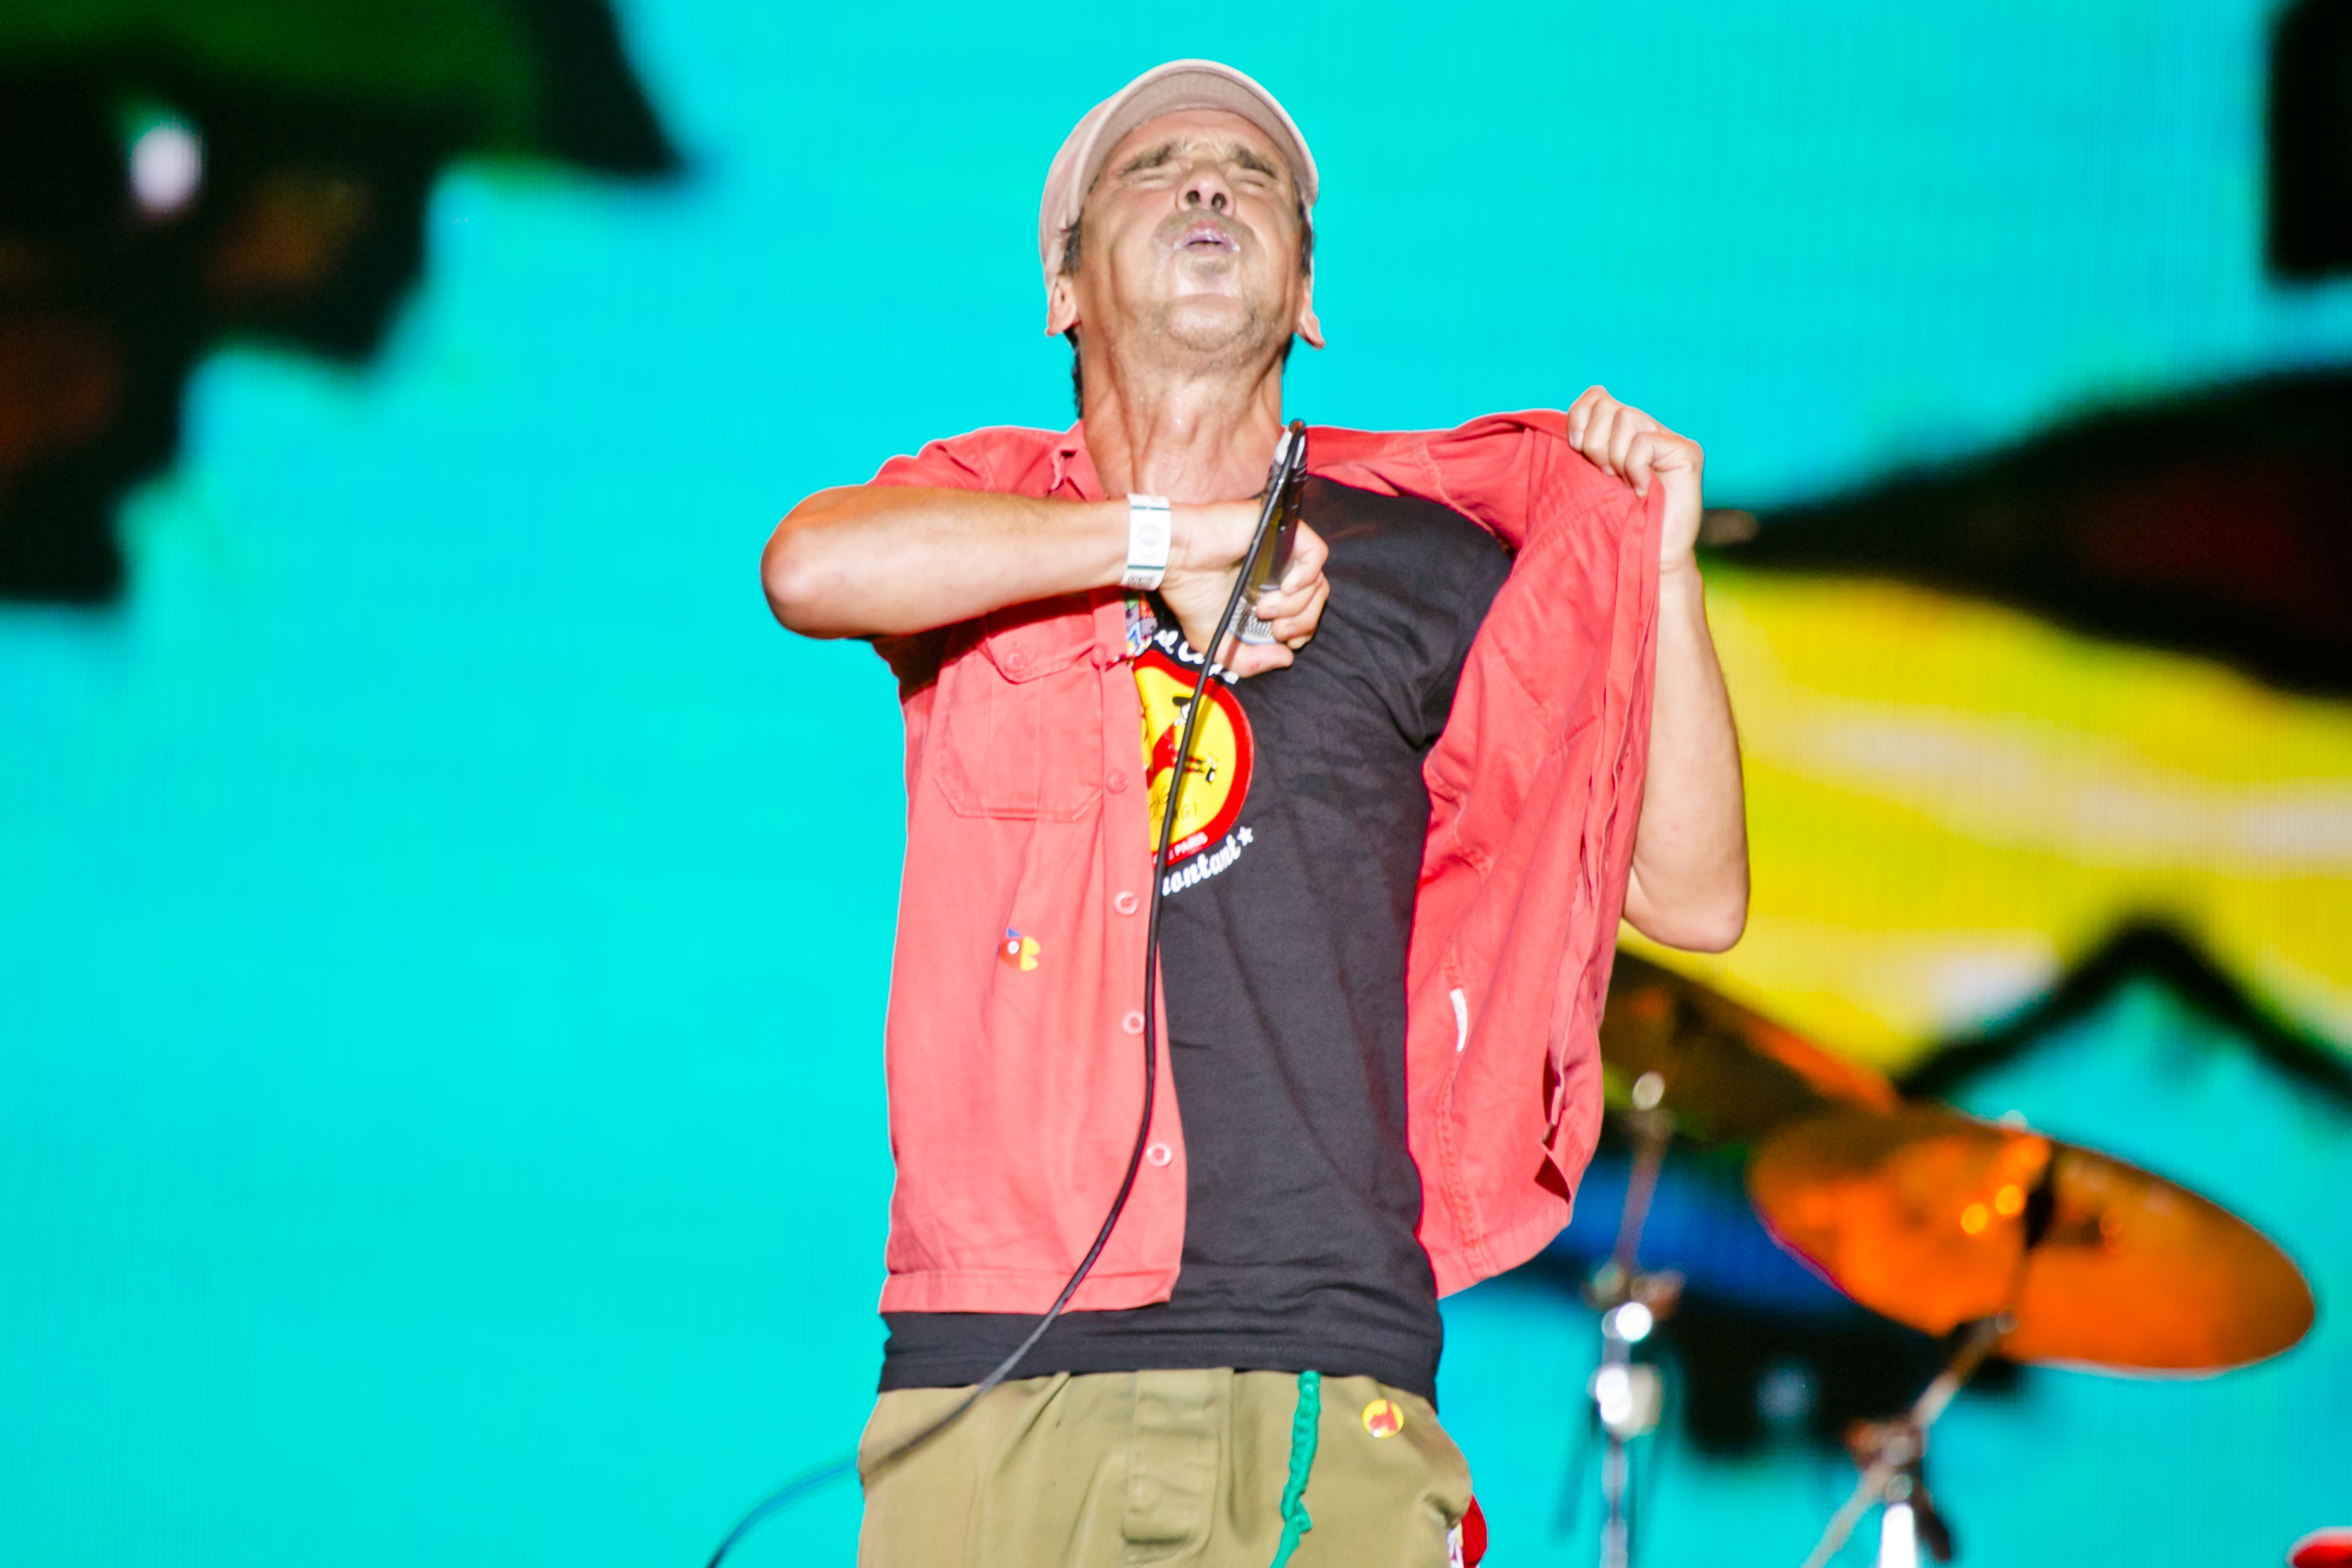 Manu Chao at Sziget Festival, Budapest, Hungary - 12 August 2016